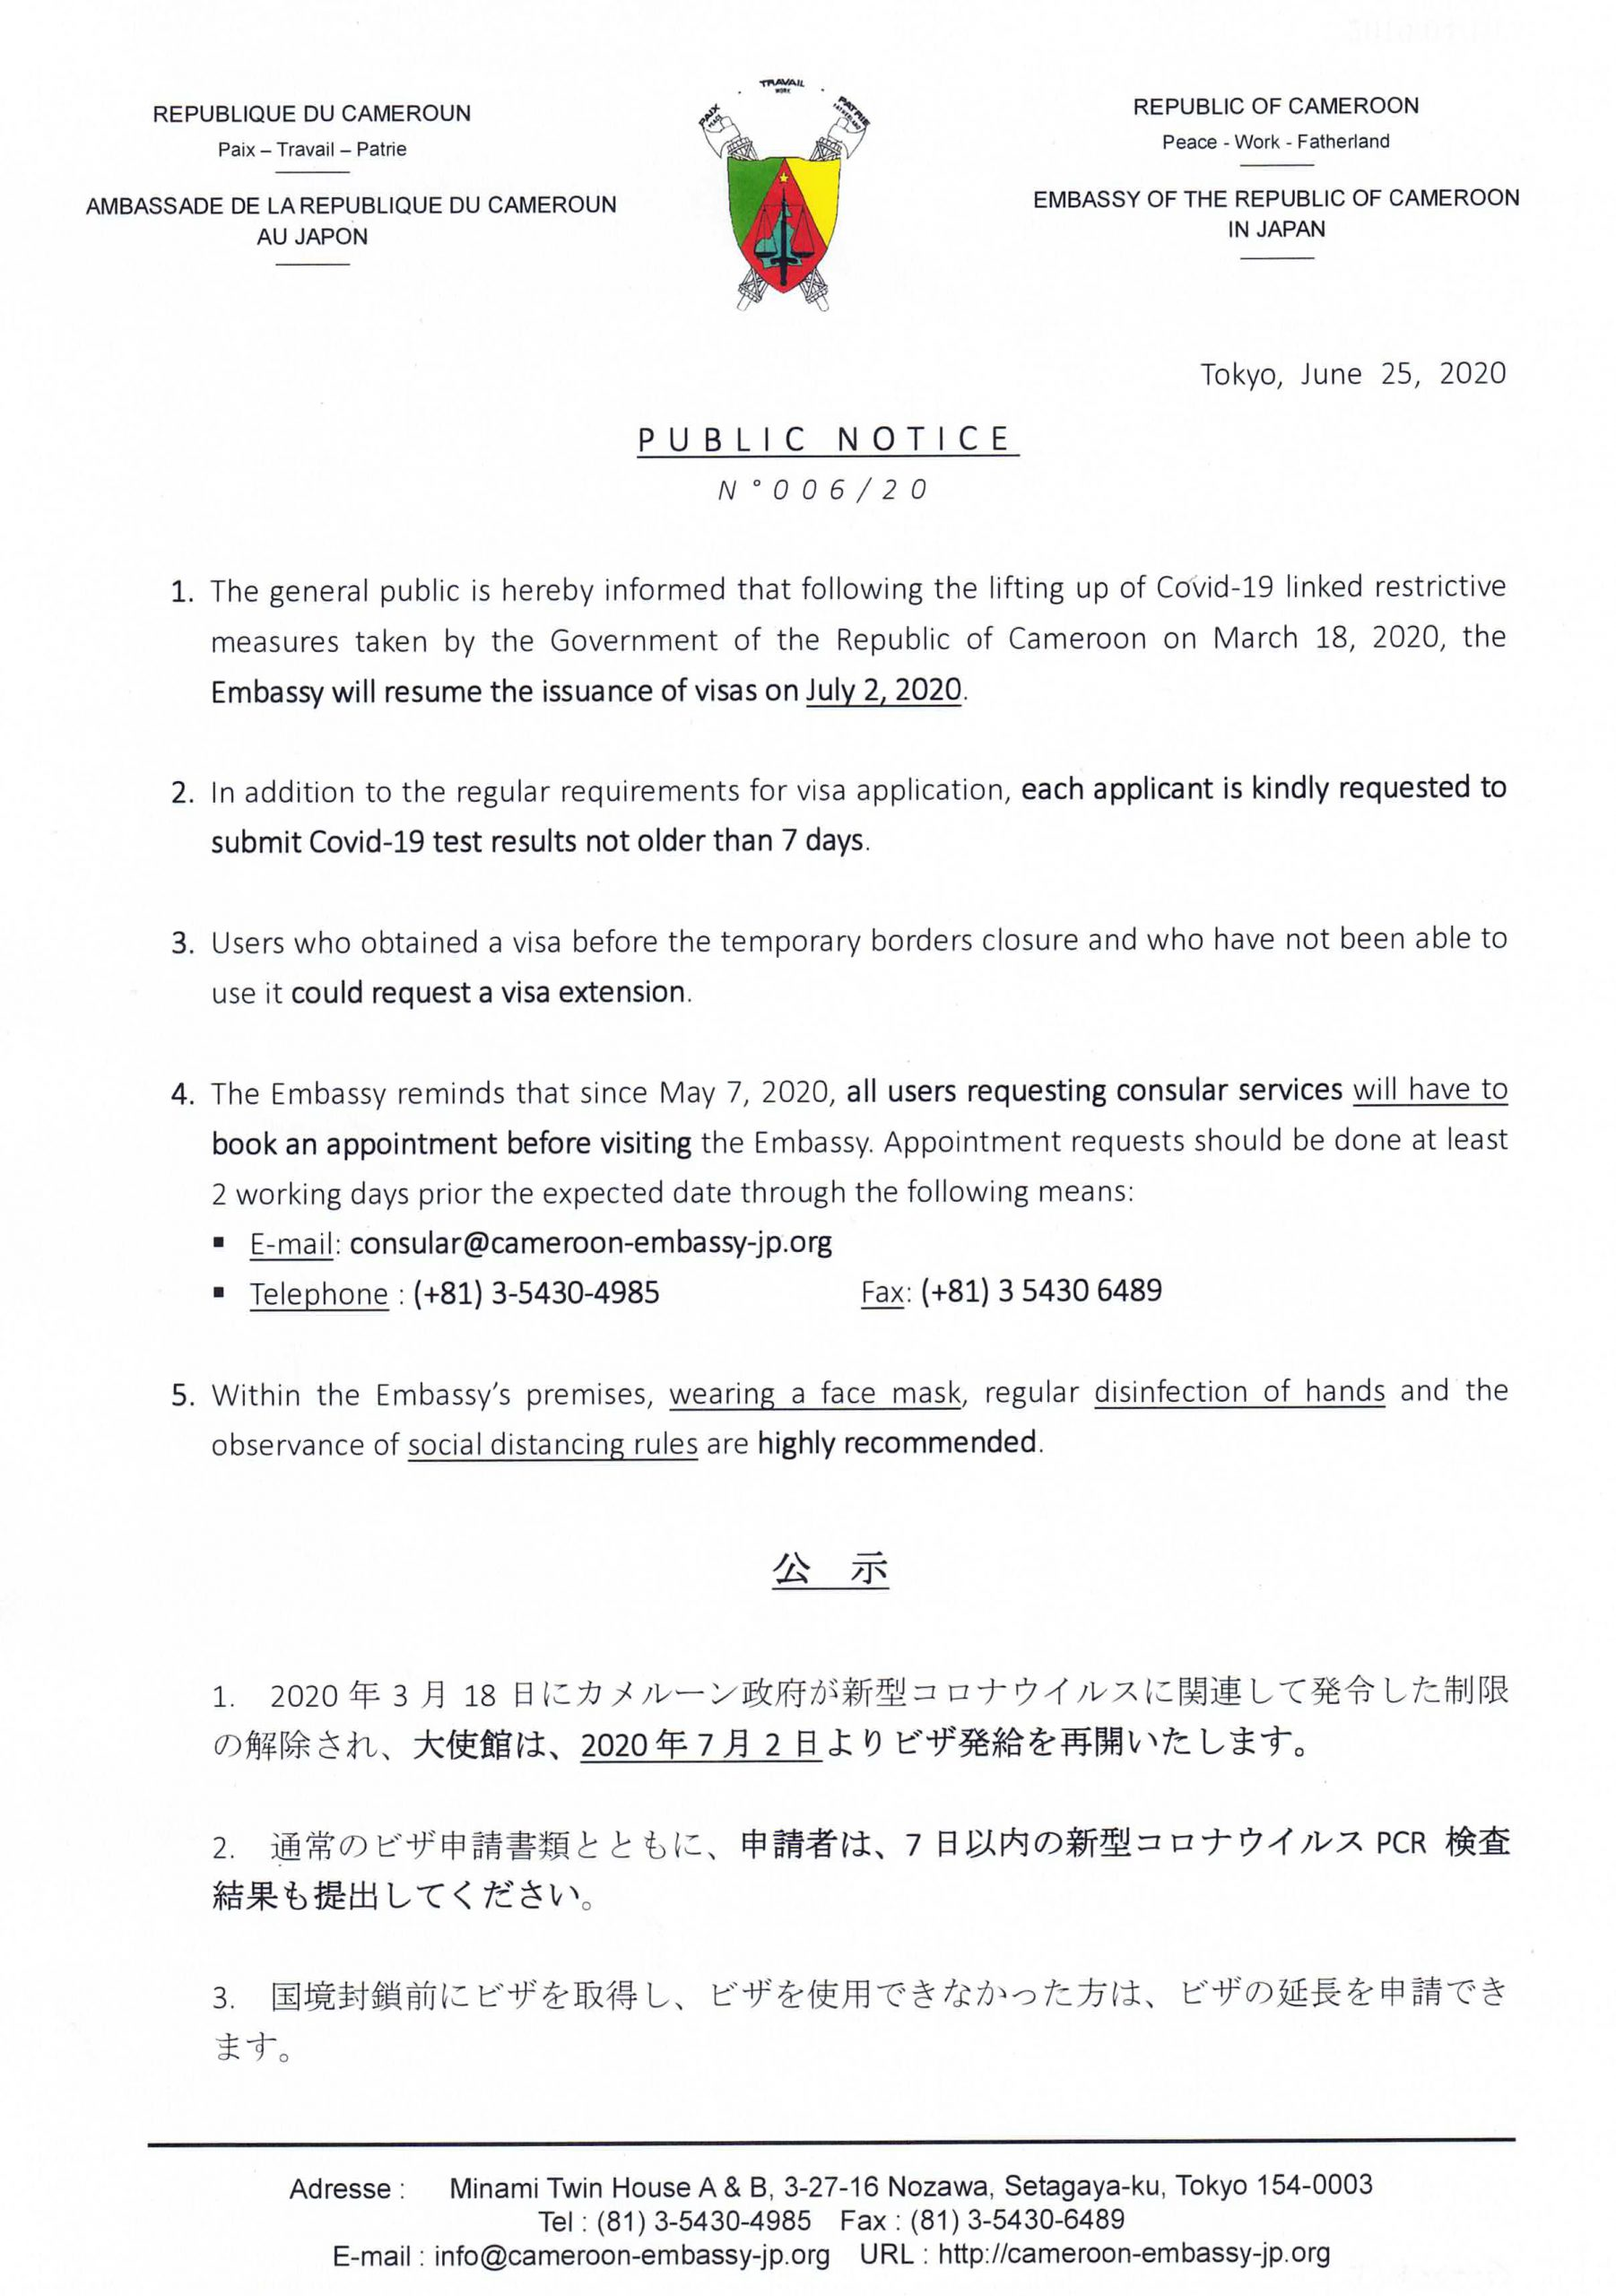 Consular Services Embassy Of The Republic Of Cameroon In Japan